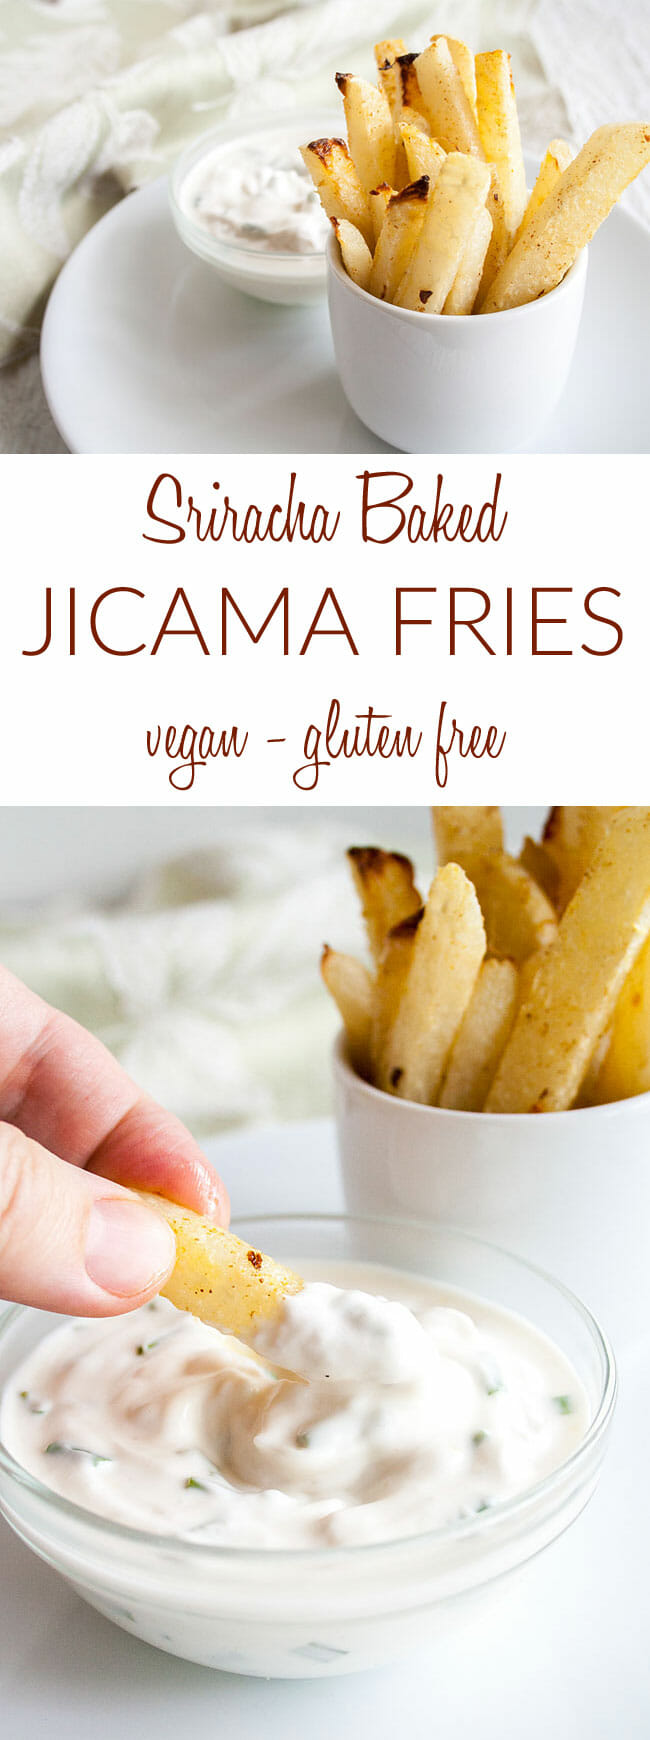 Baked Jicama Fries collage photo with text.